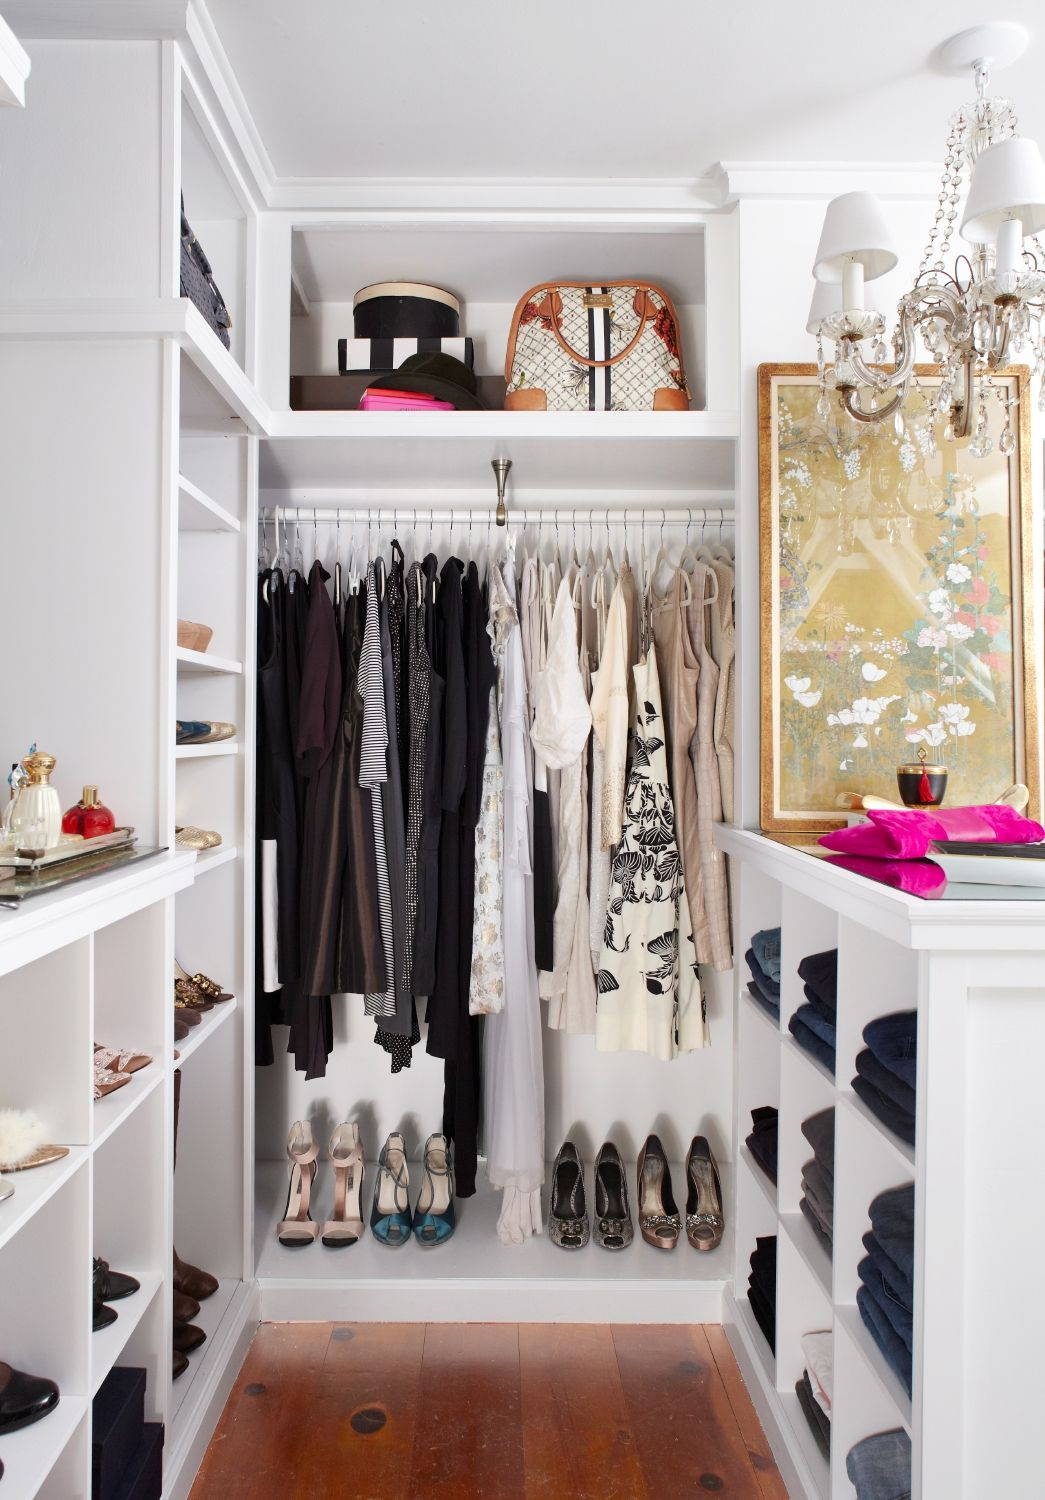 Charming Awesome Small Walk In Closet For Your Room #Closet #Roomideas